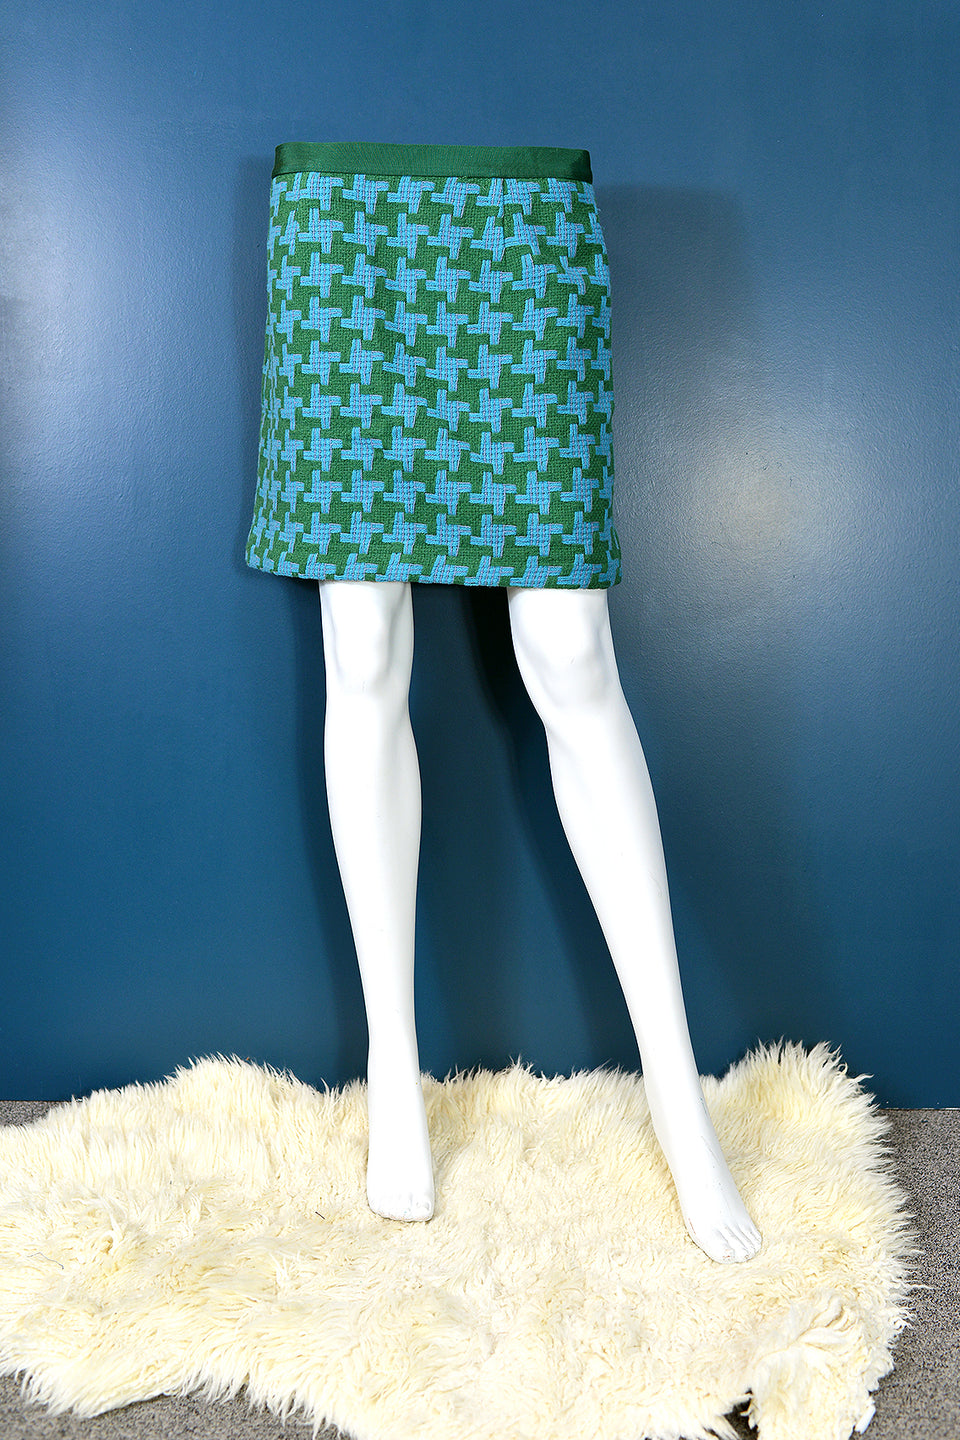 BODEN Women's Green and Blue Geometric Print Woollen Skirt. Size 12. Pre-Loved.